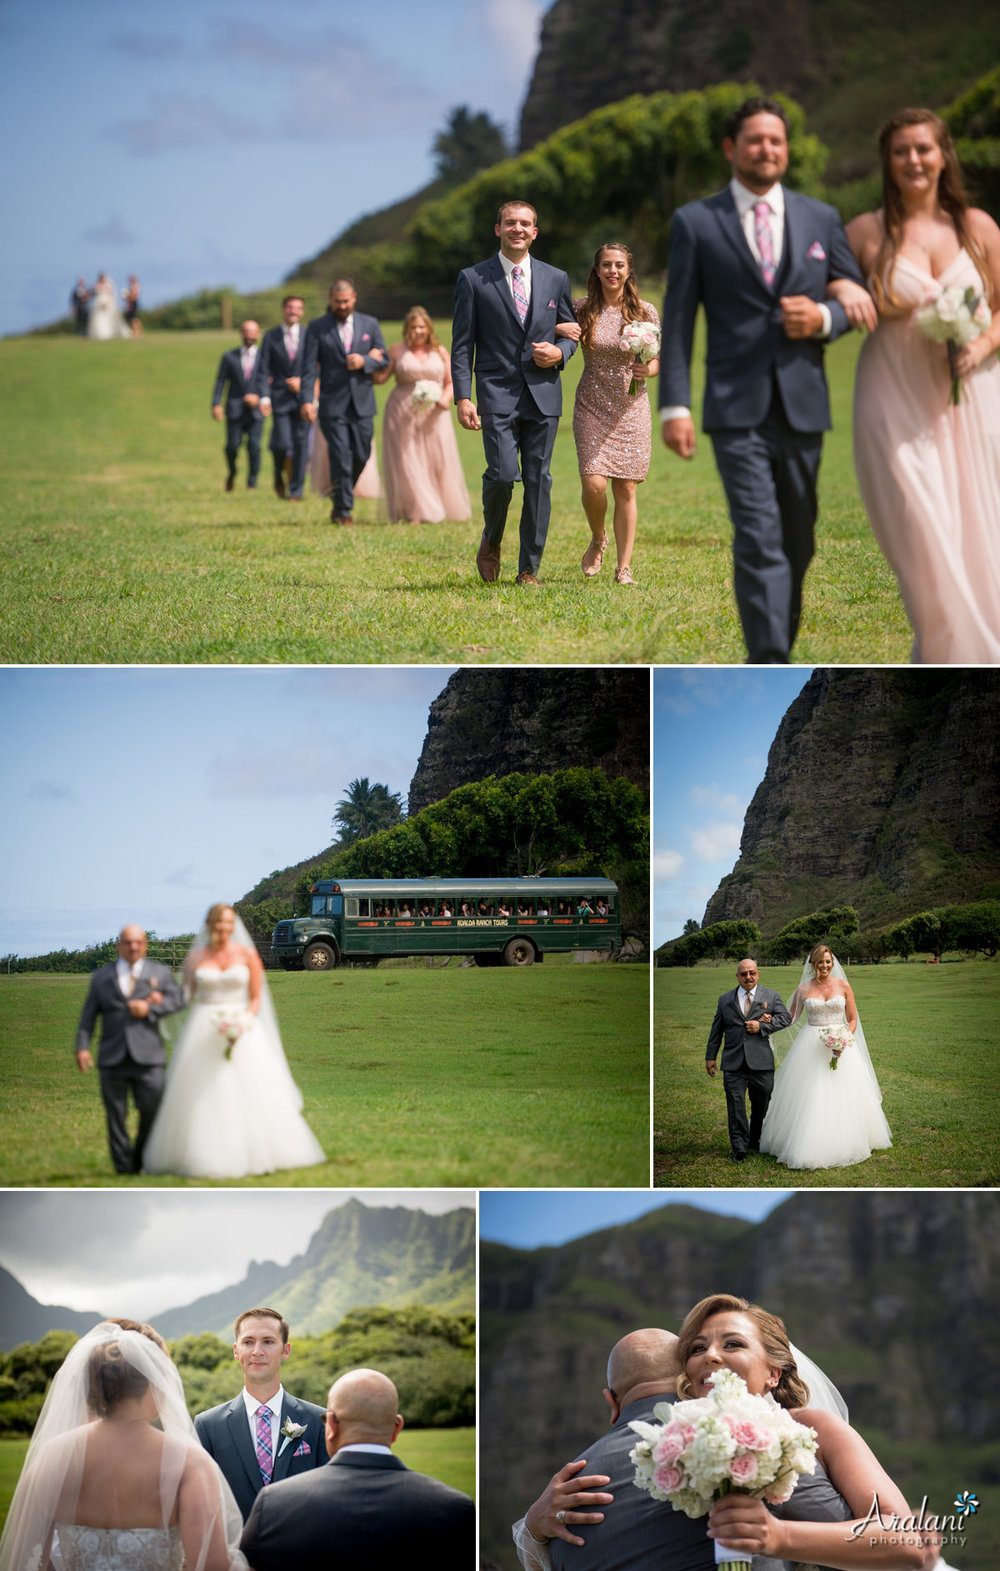 Kualoa_Ranch_Wedding_Oahu0006.jpg